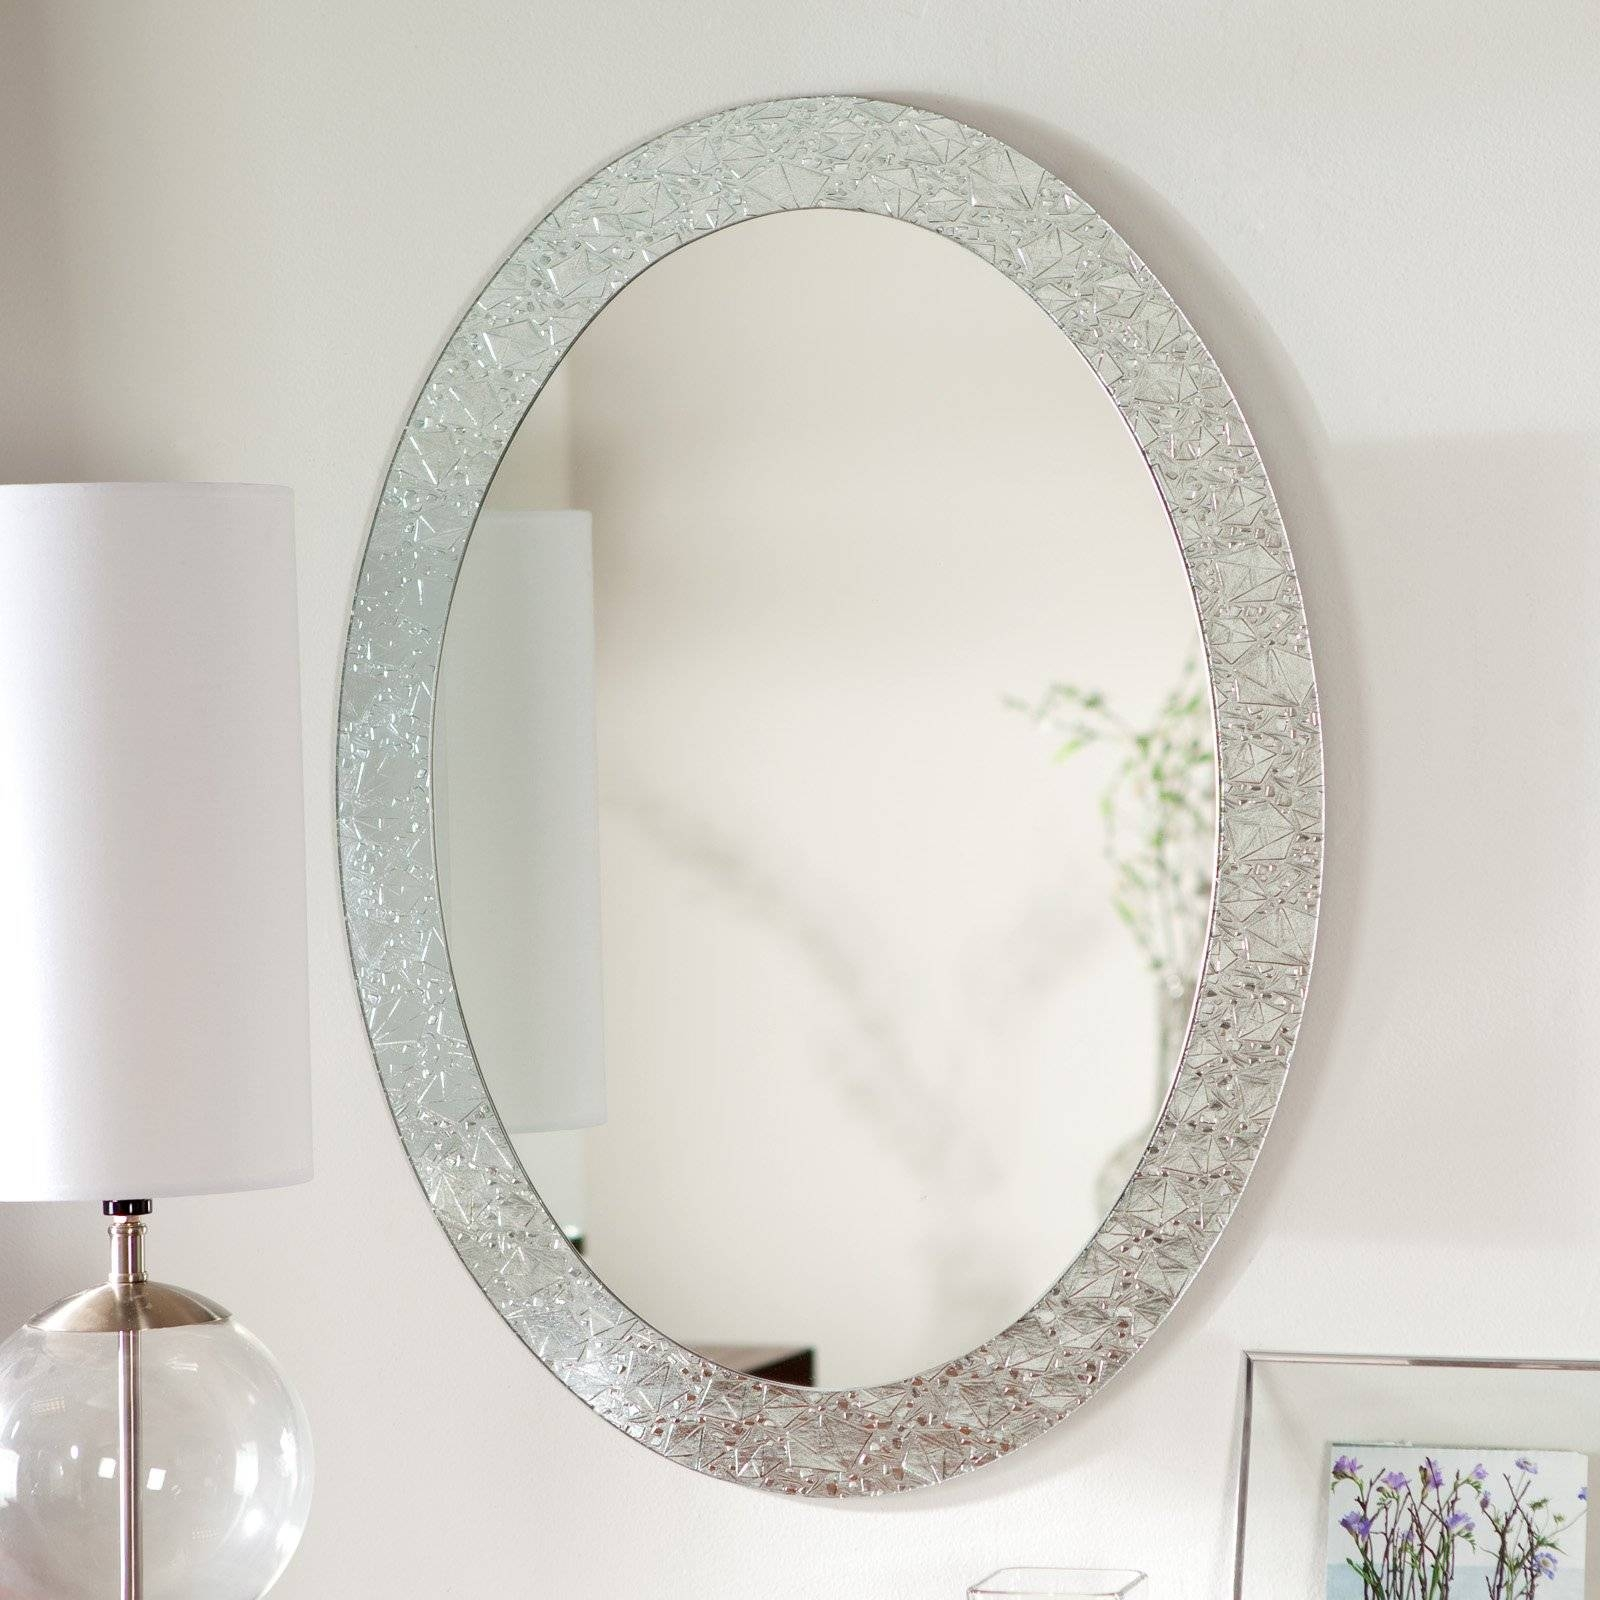 Oval Mirror With Gray Marble Frame Placed On The White Wall Of regarding White Decorative Mirrors (Image 21 of 25)